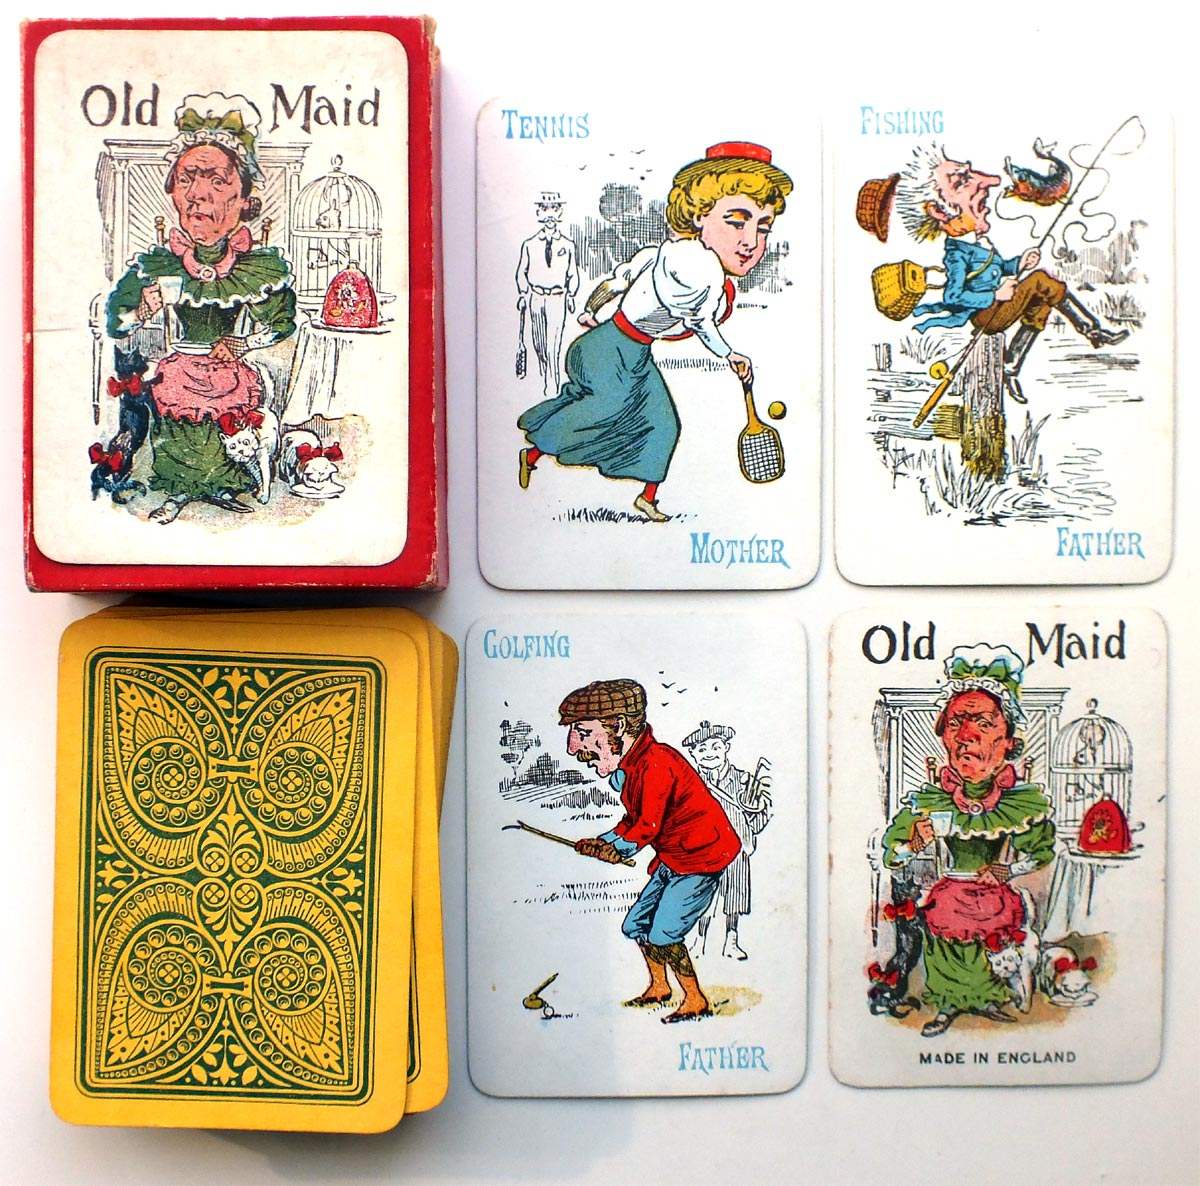 Roberts Brothers 'Old Maid' c. 1920s